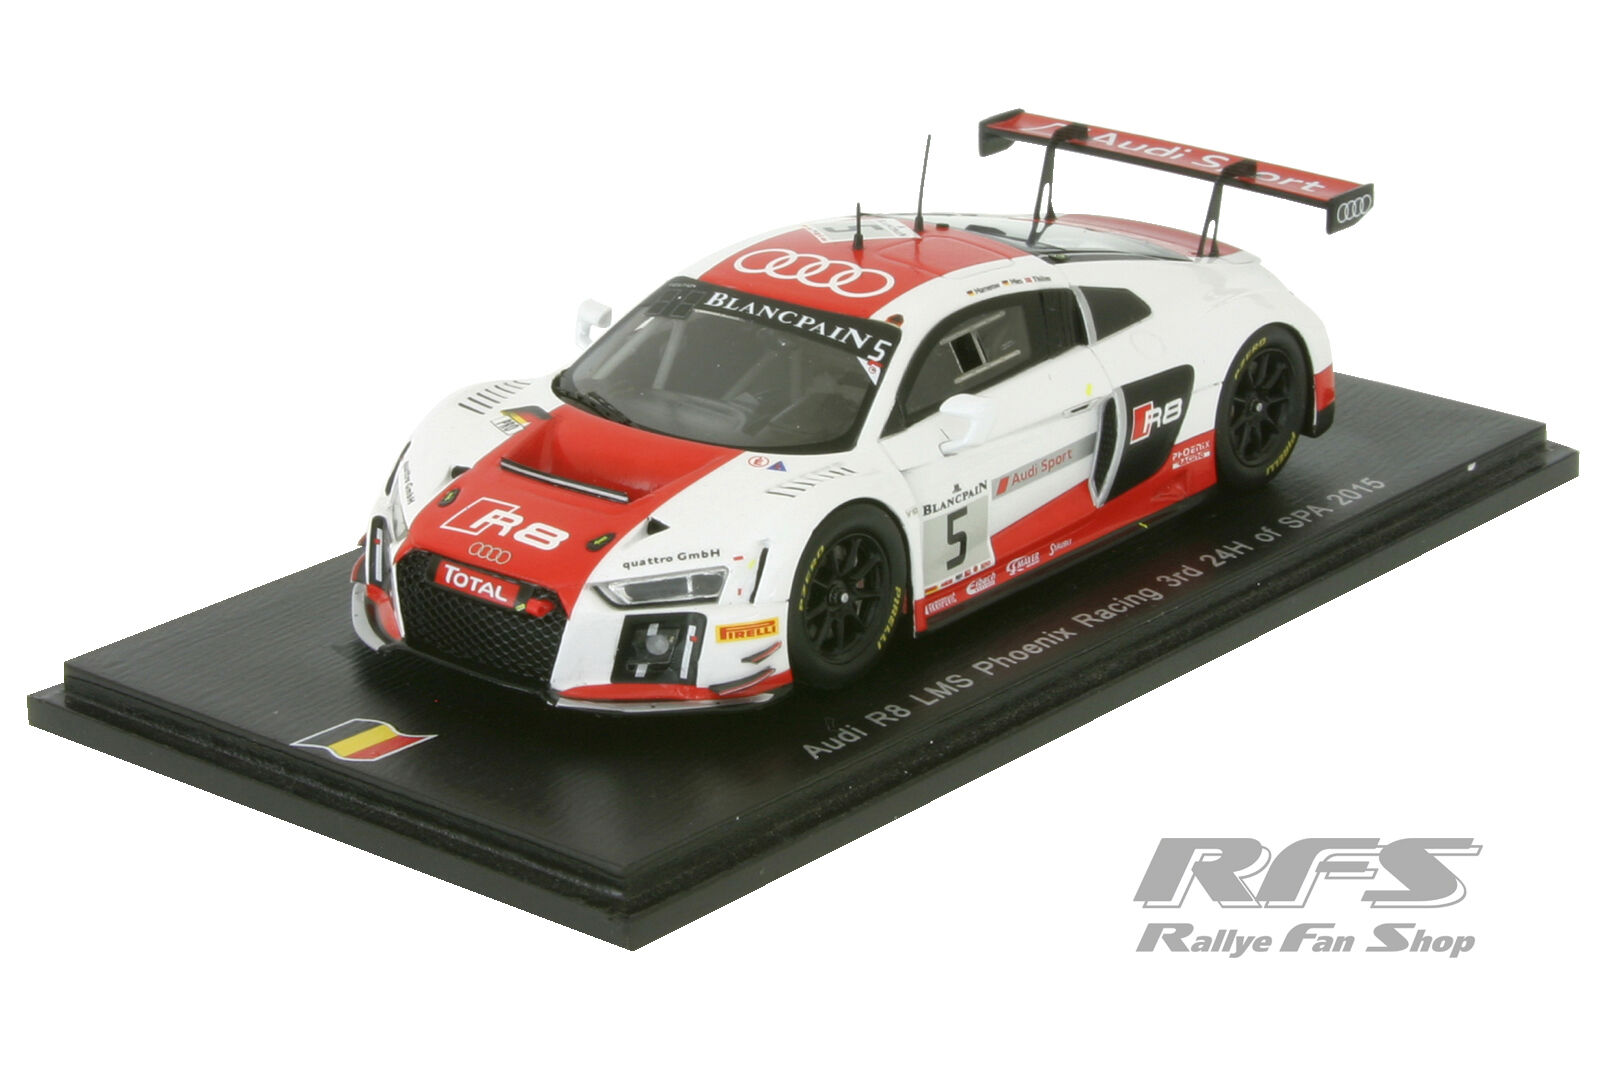 Audi r8 LMS ultra - 24 hours of spa 2015-mamerow Mies - 1 43 Spark sb110